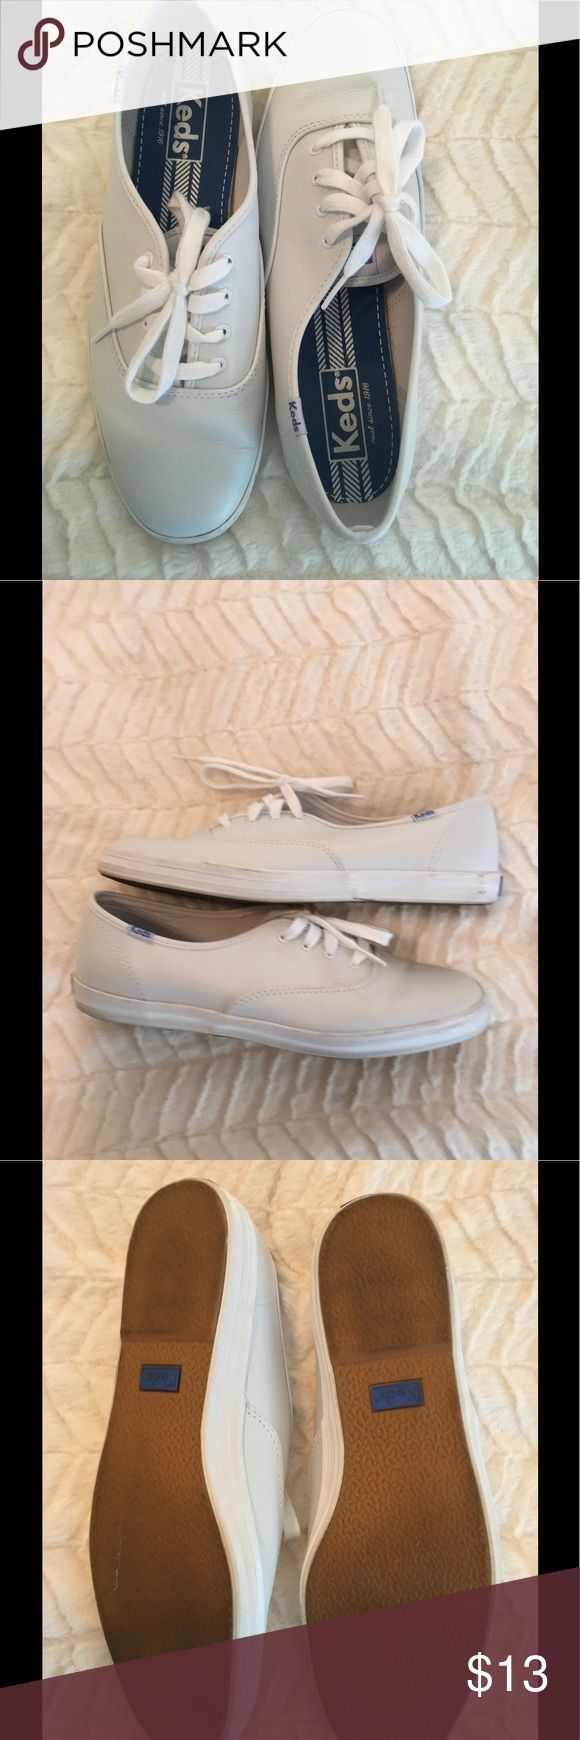 White leather keds In good condition Keds Shoes Sneakers